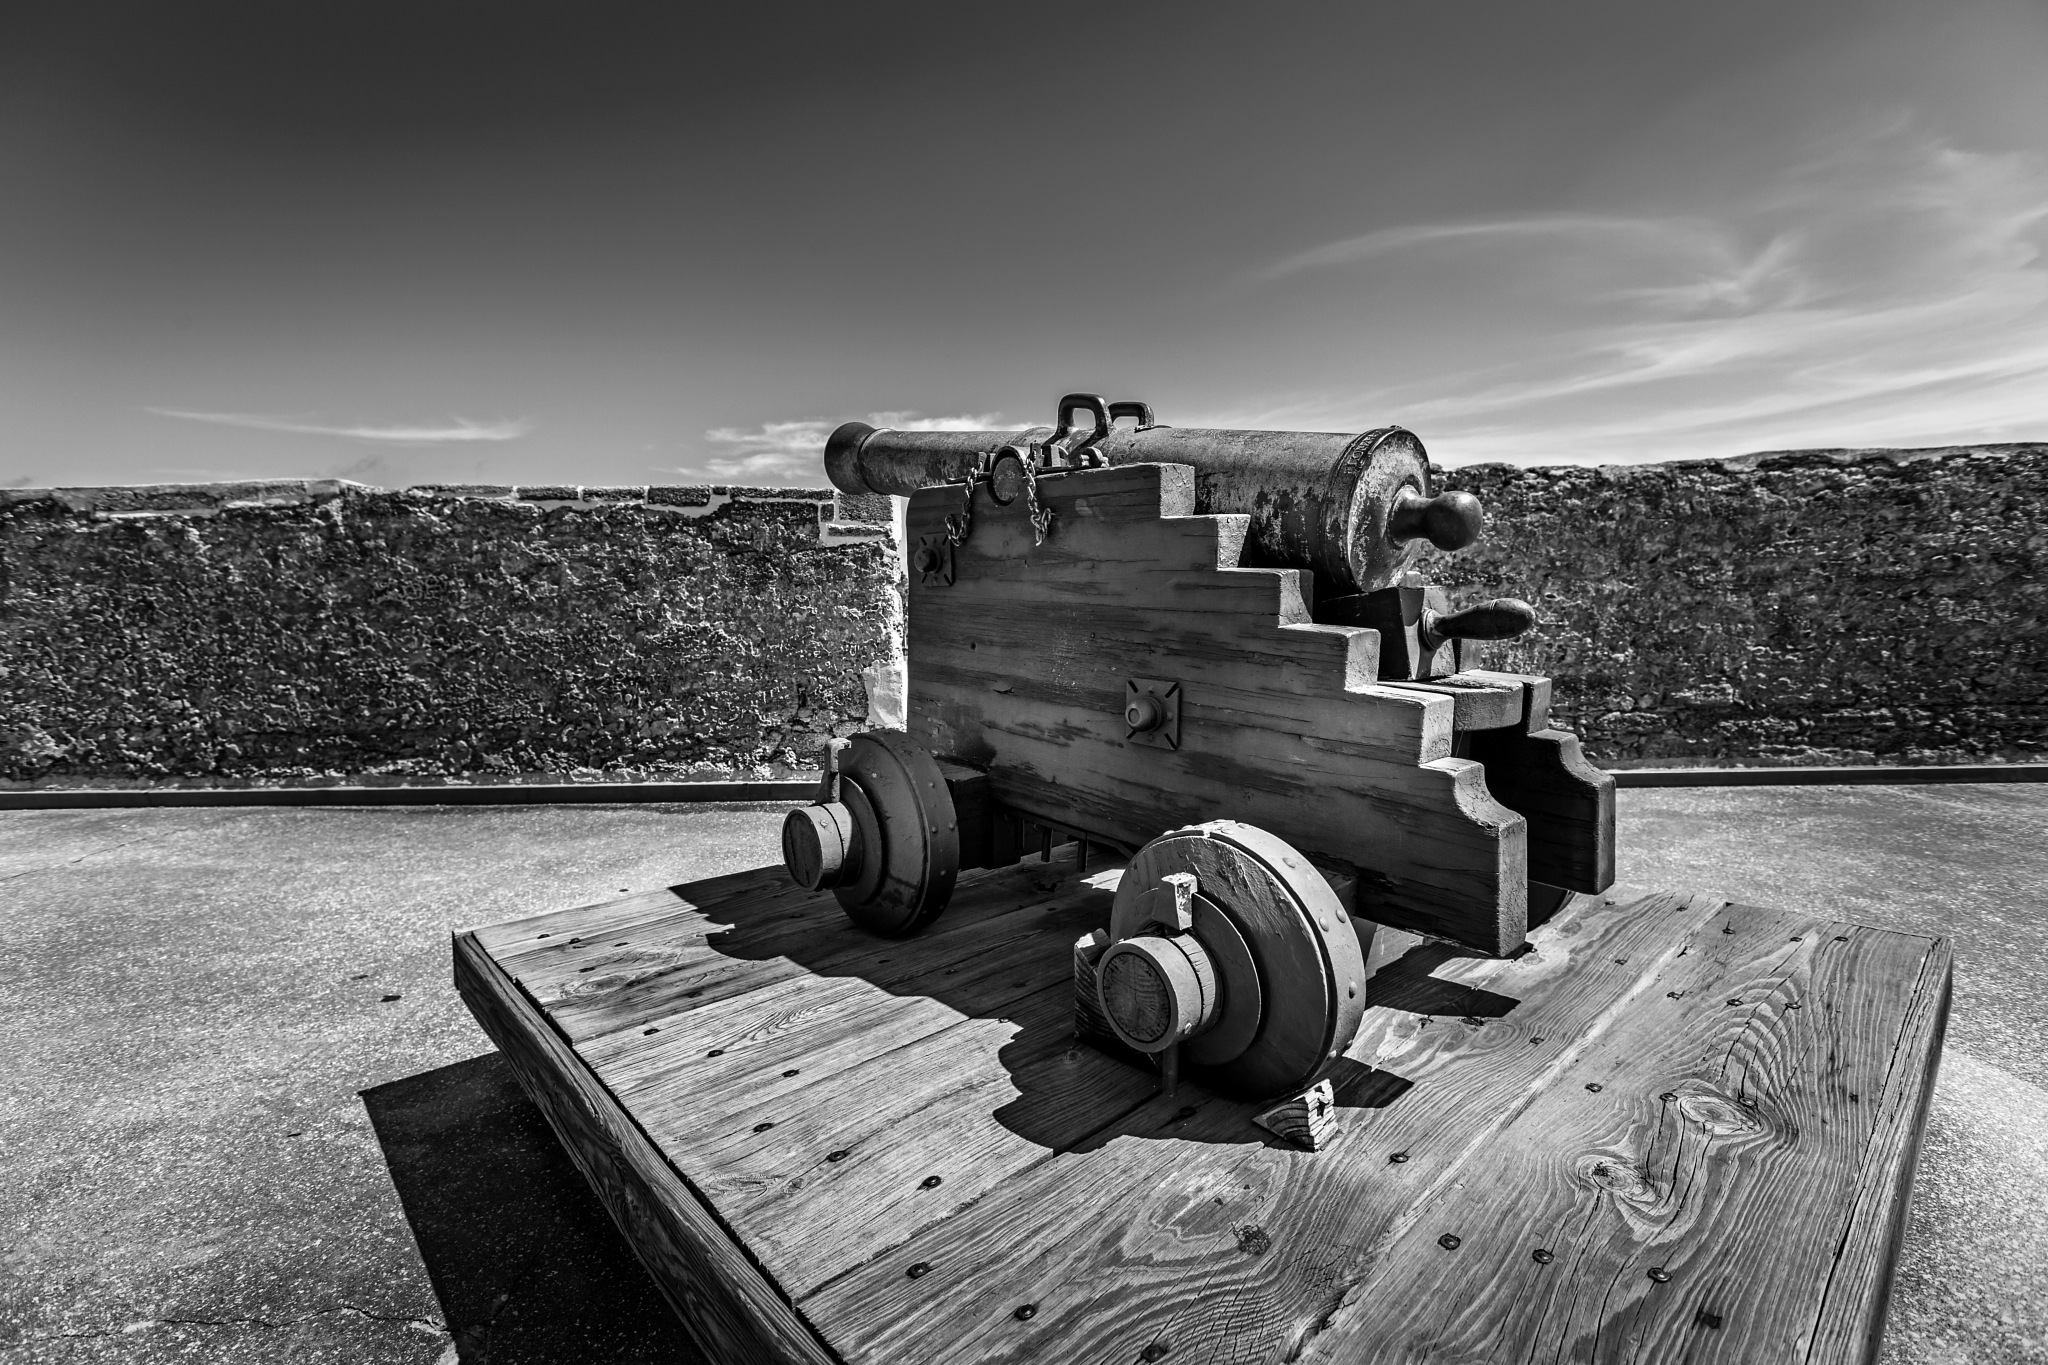 Cannon by Bryan L. Williams